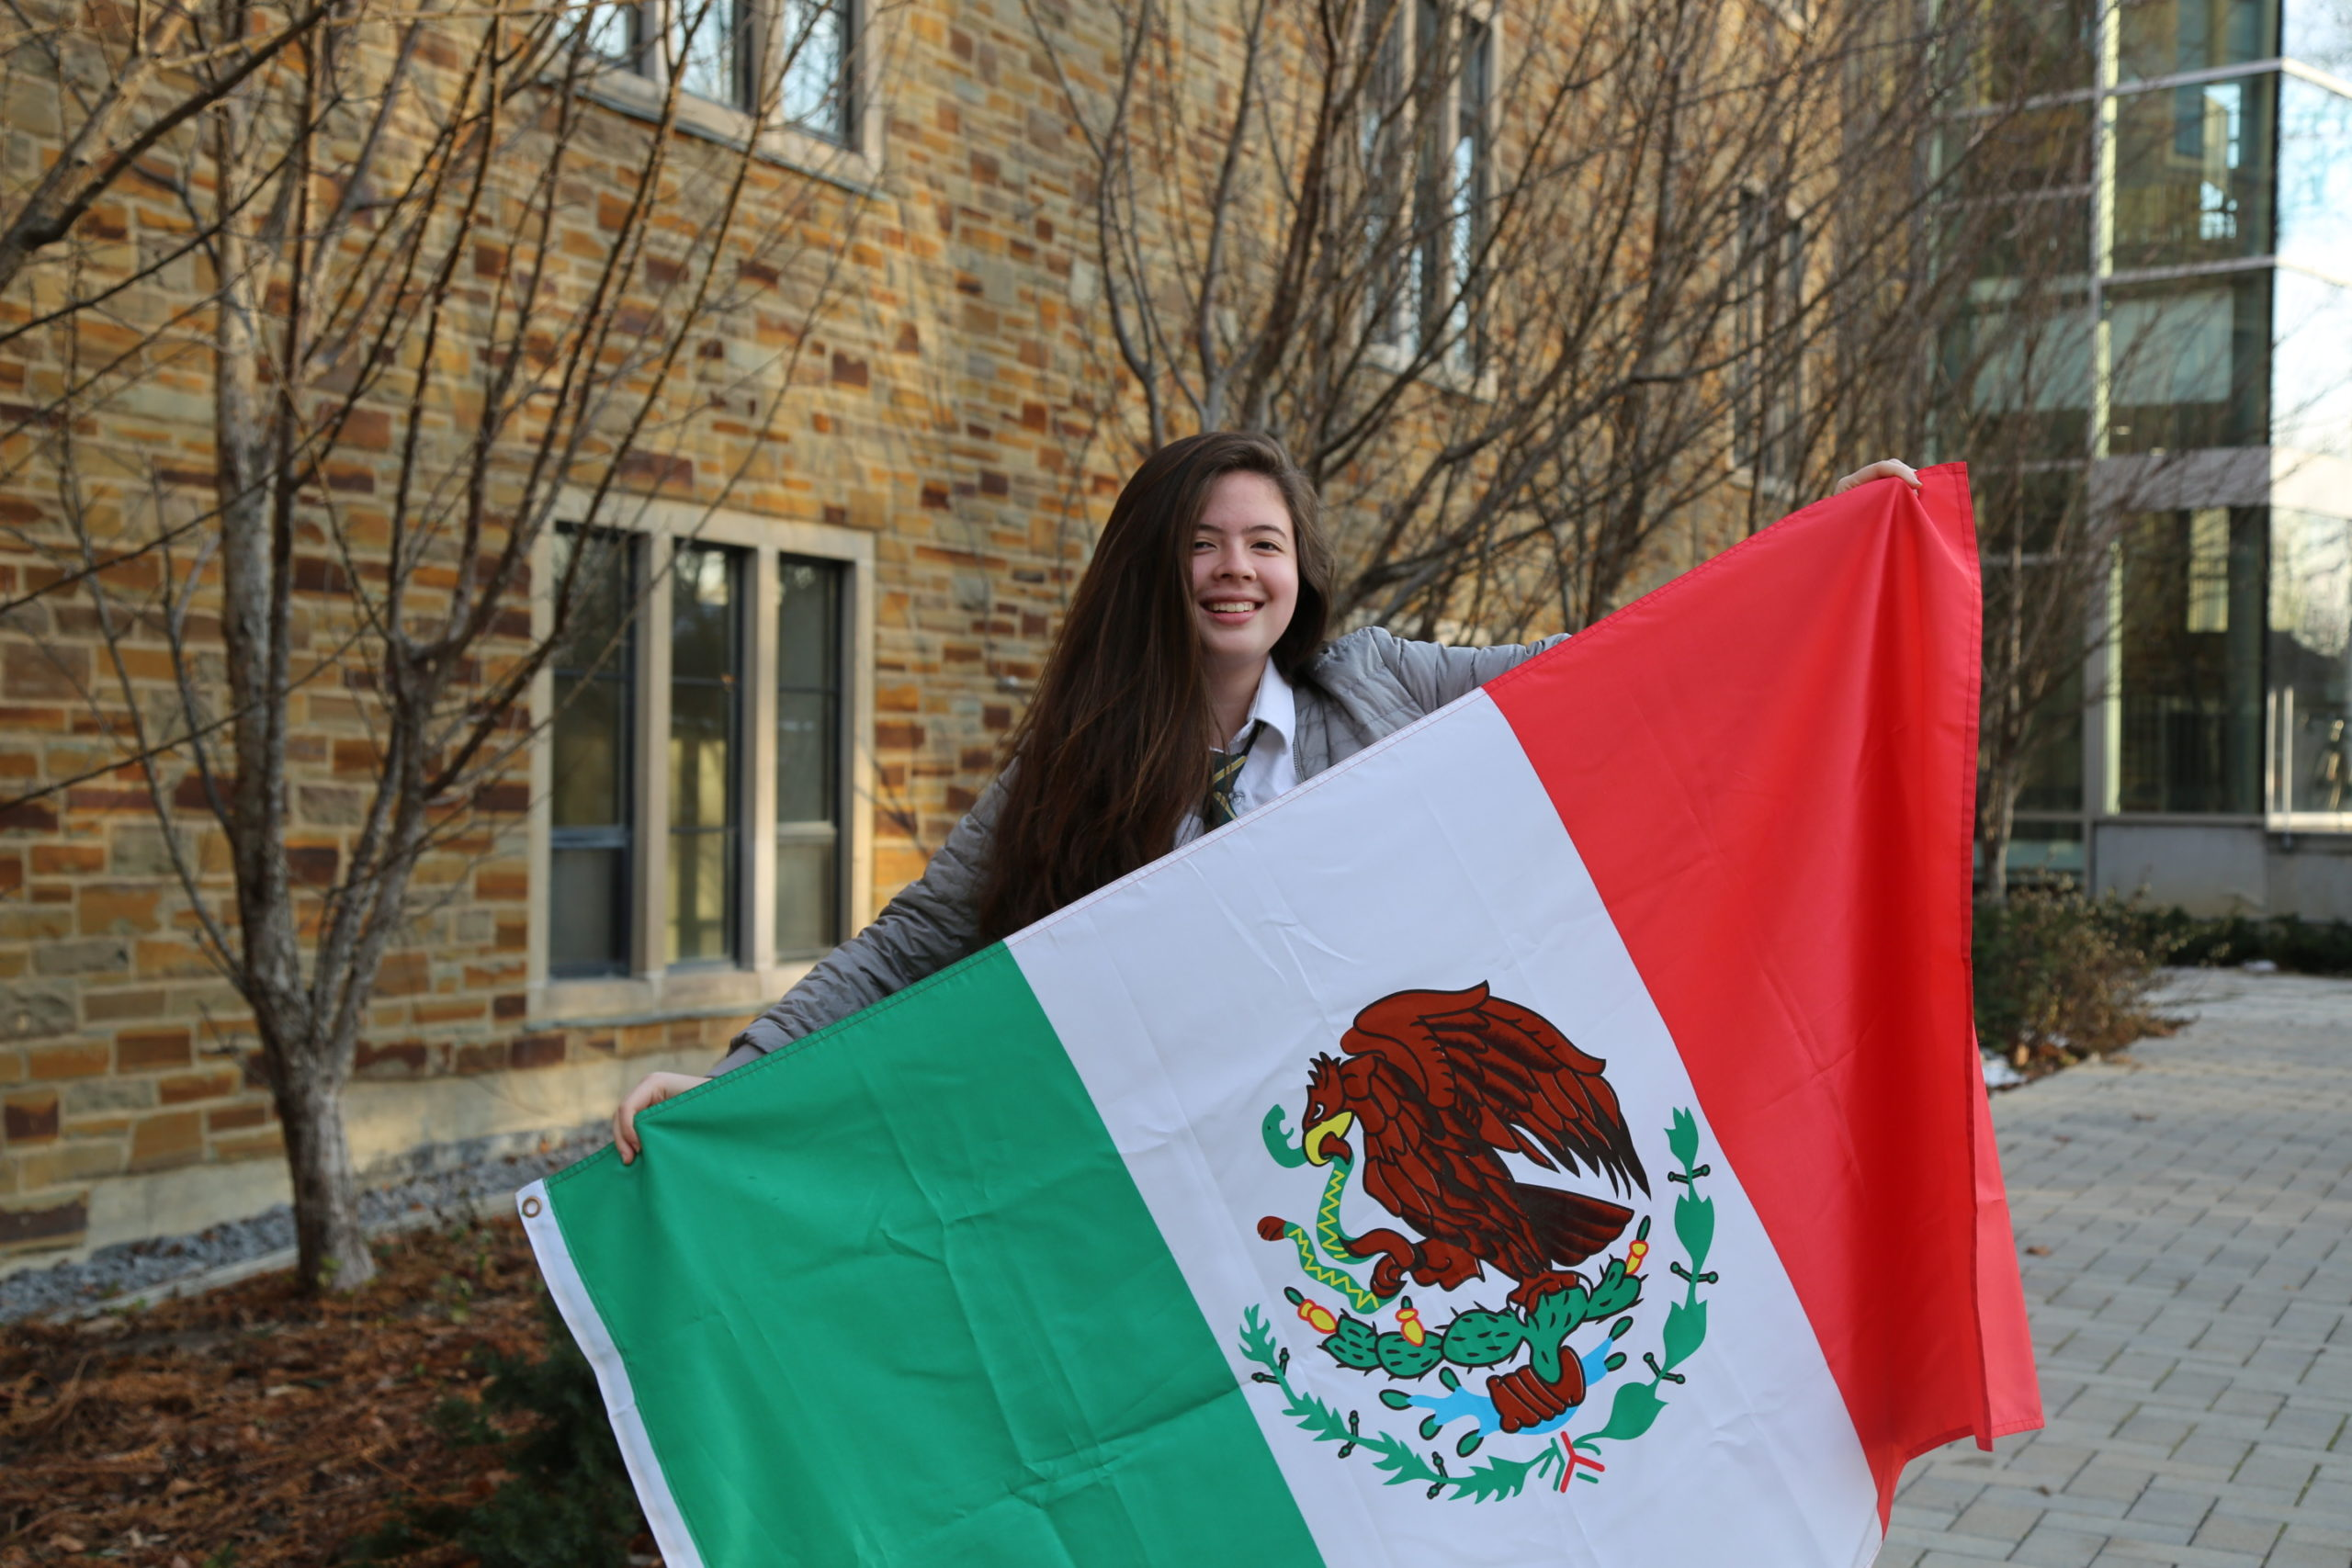 A student outside the Upper School smiles while holding a Mexican flag.